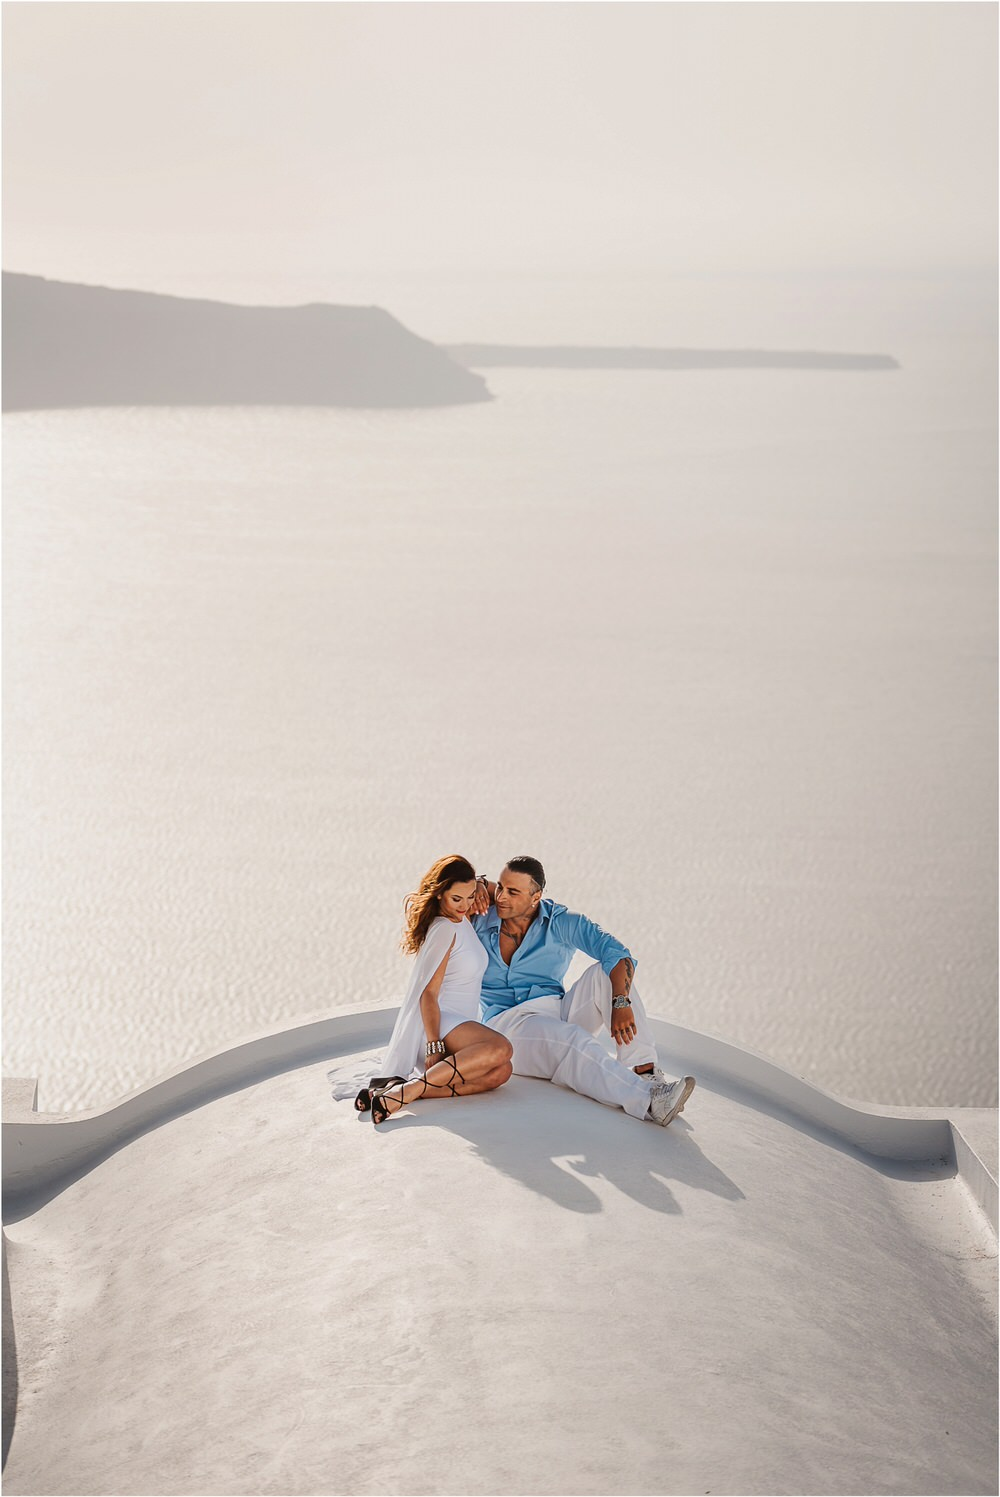 Tuscany wedding photographer destination italy italia france greece santorini 0127.jpg